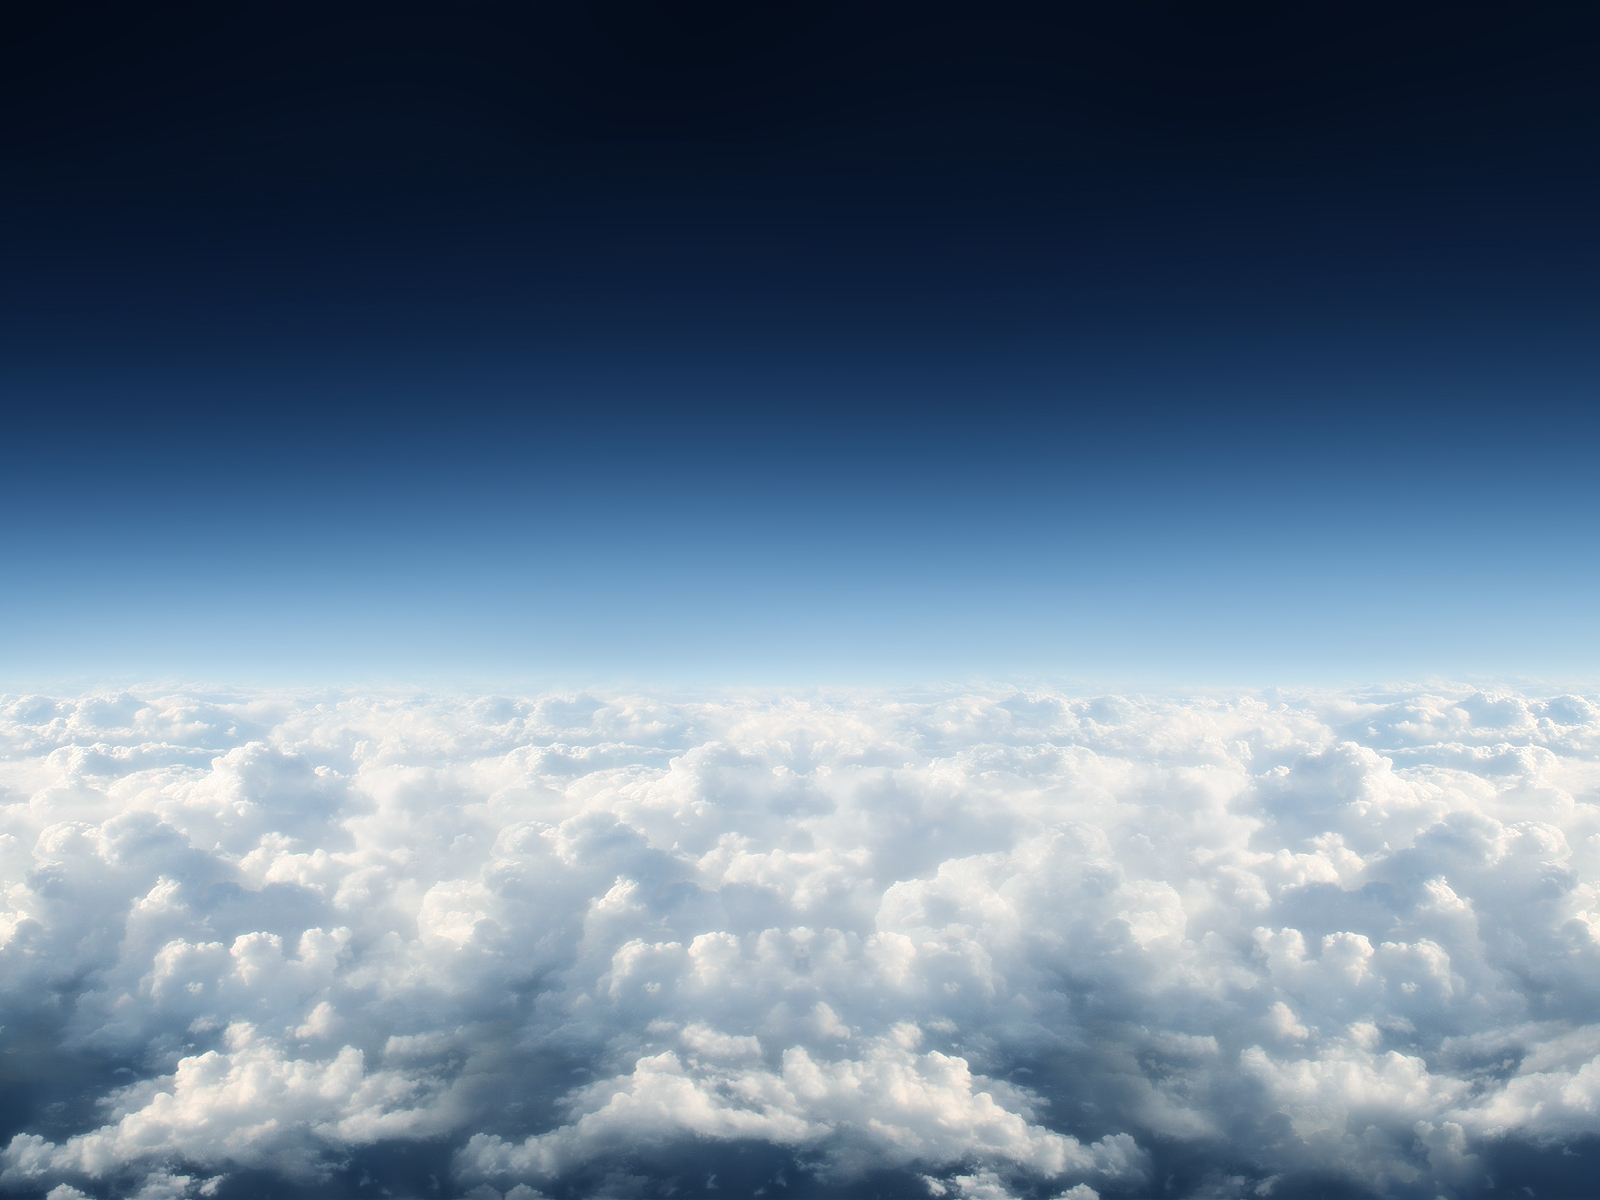 Sky Cloud Wallpapers Hd: Backgrounds - Wallpaper Abyss